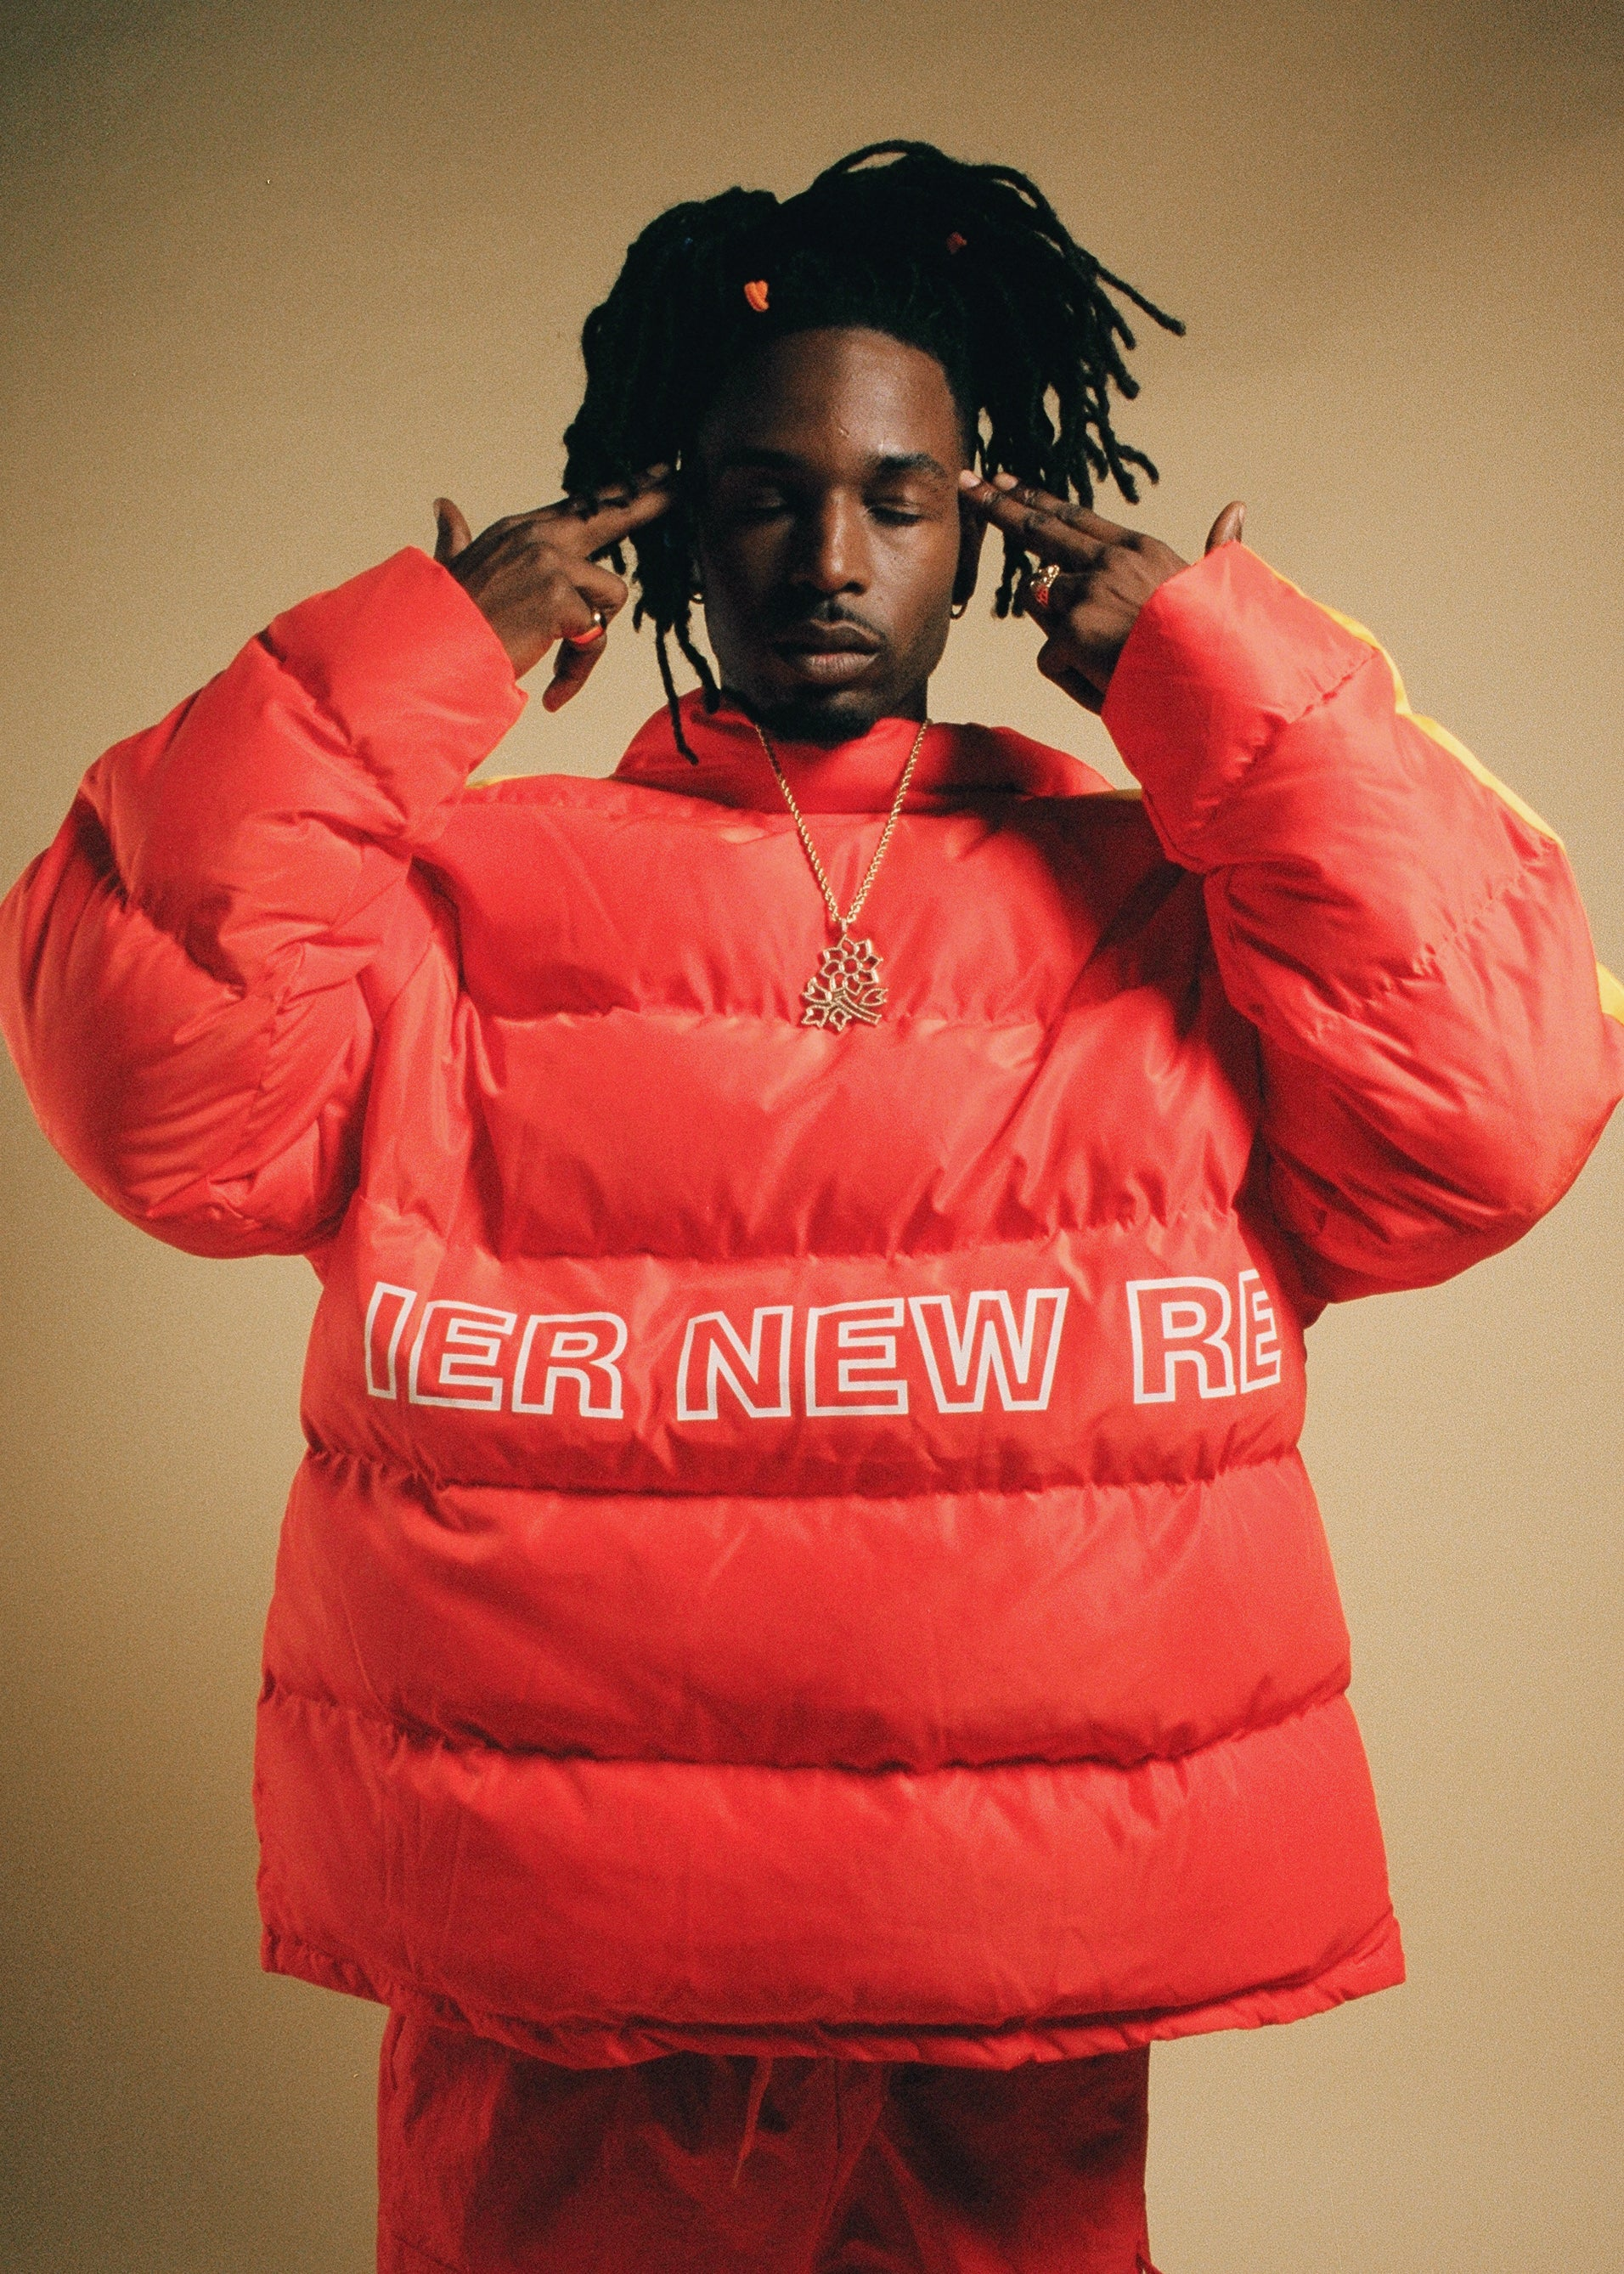 Jazz Cartier for Atelier New Regime